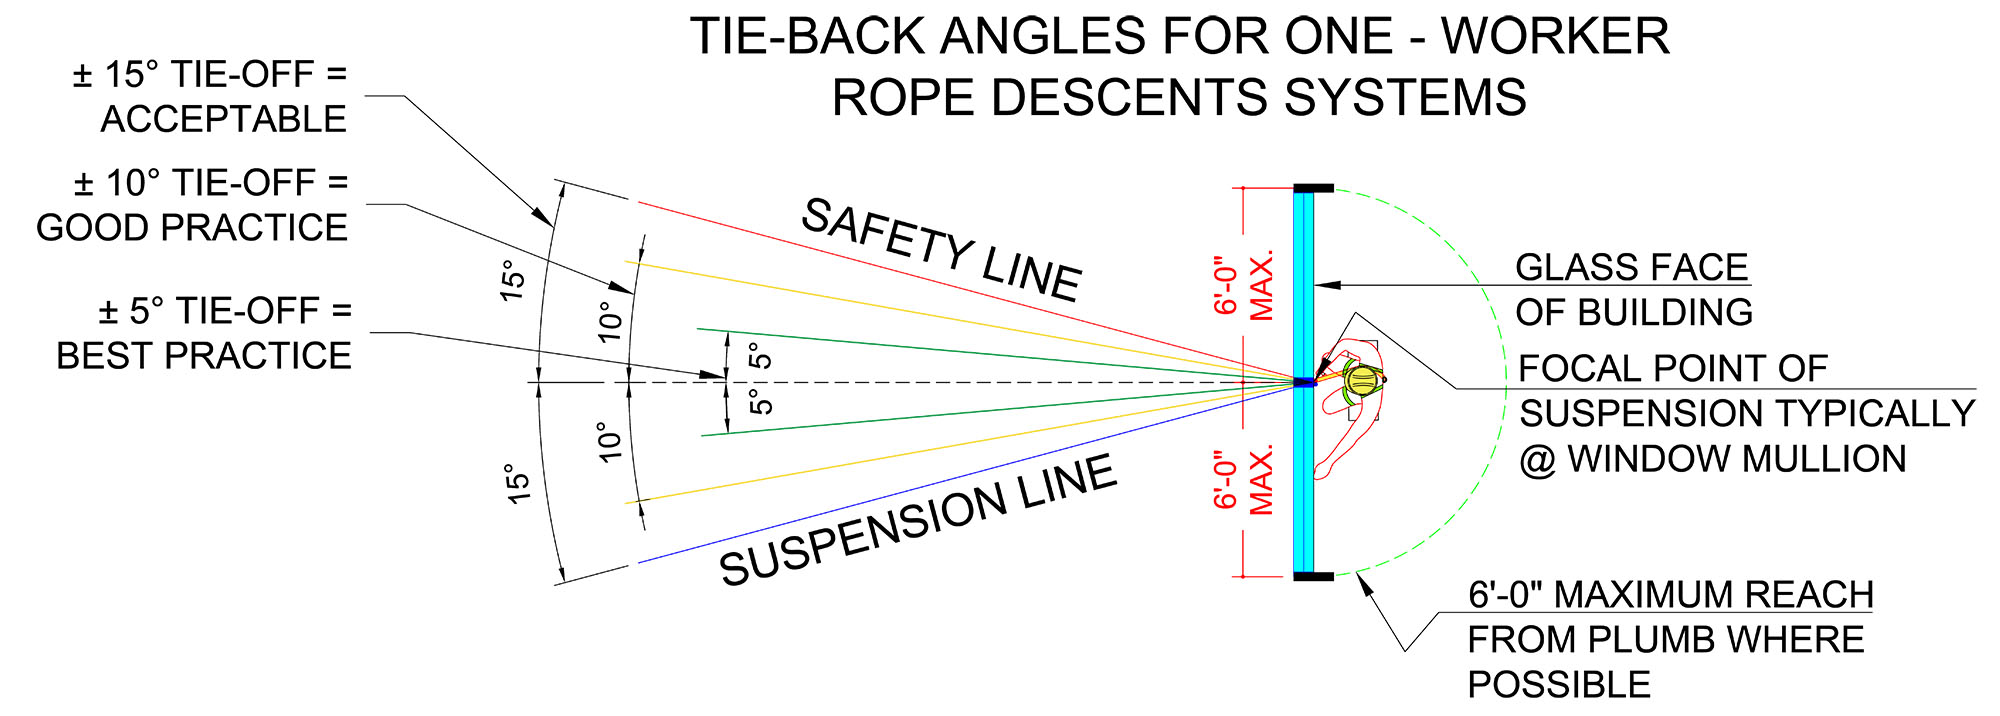 ONE MAN ROPE DESCENT TEMPLATE